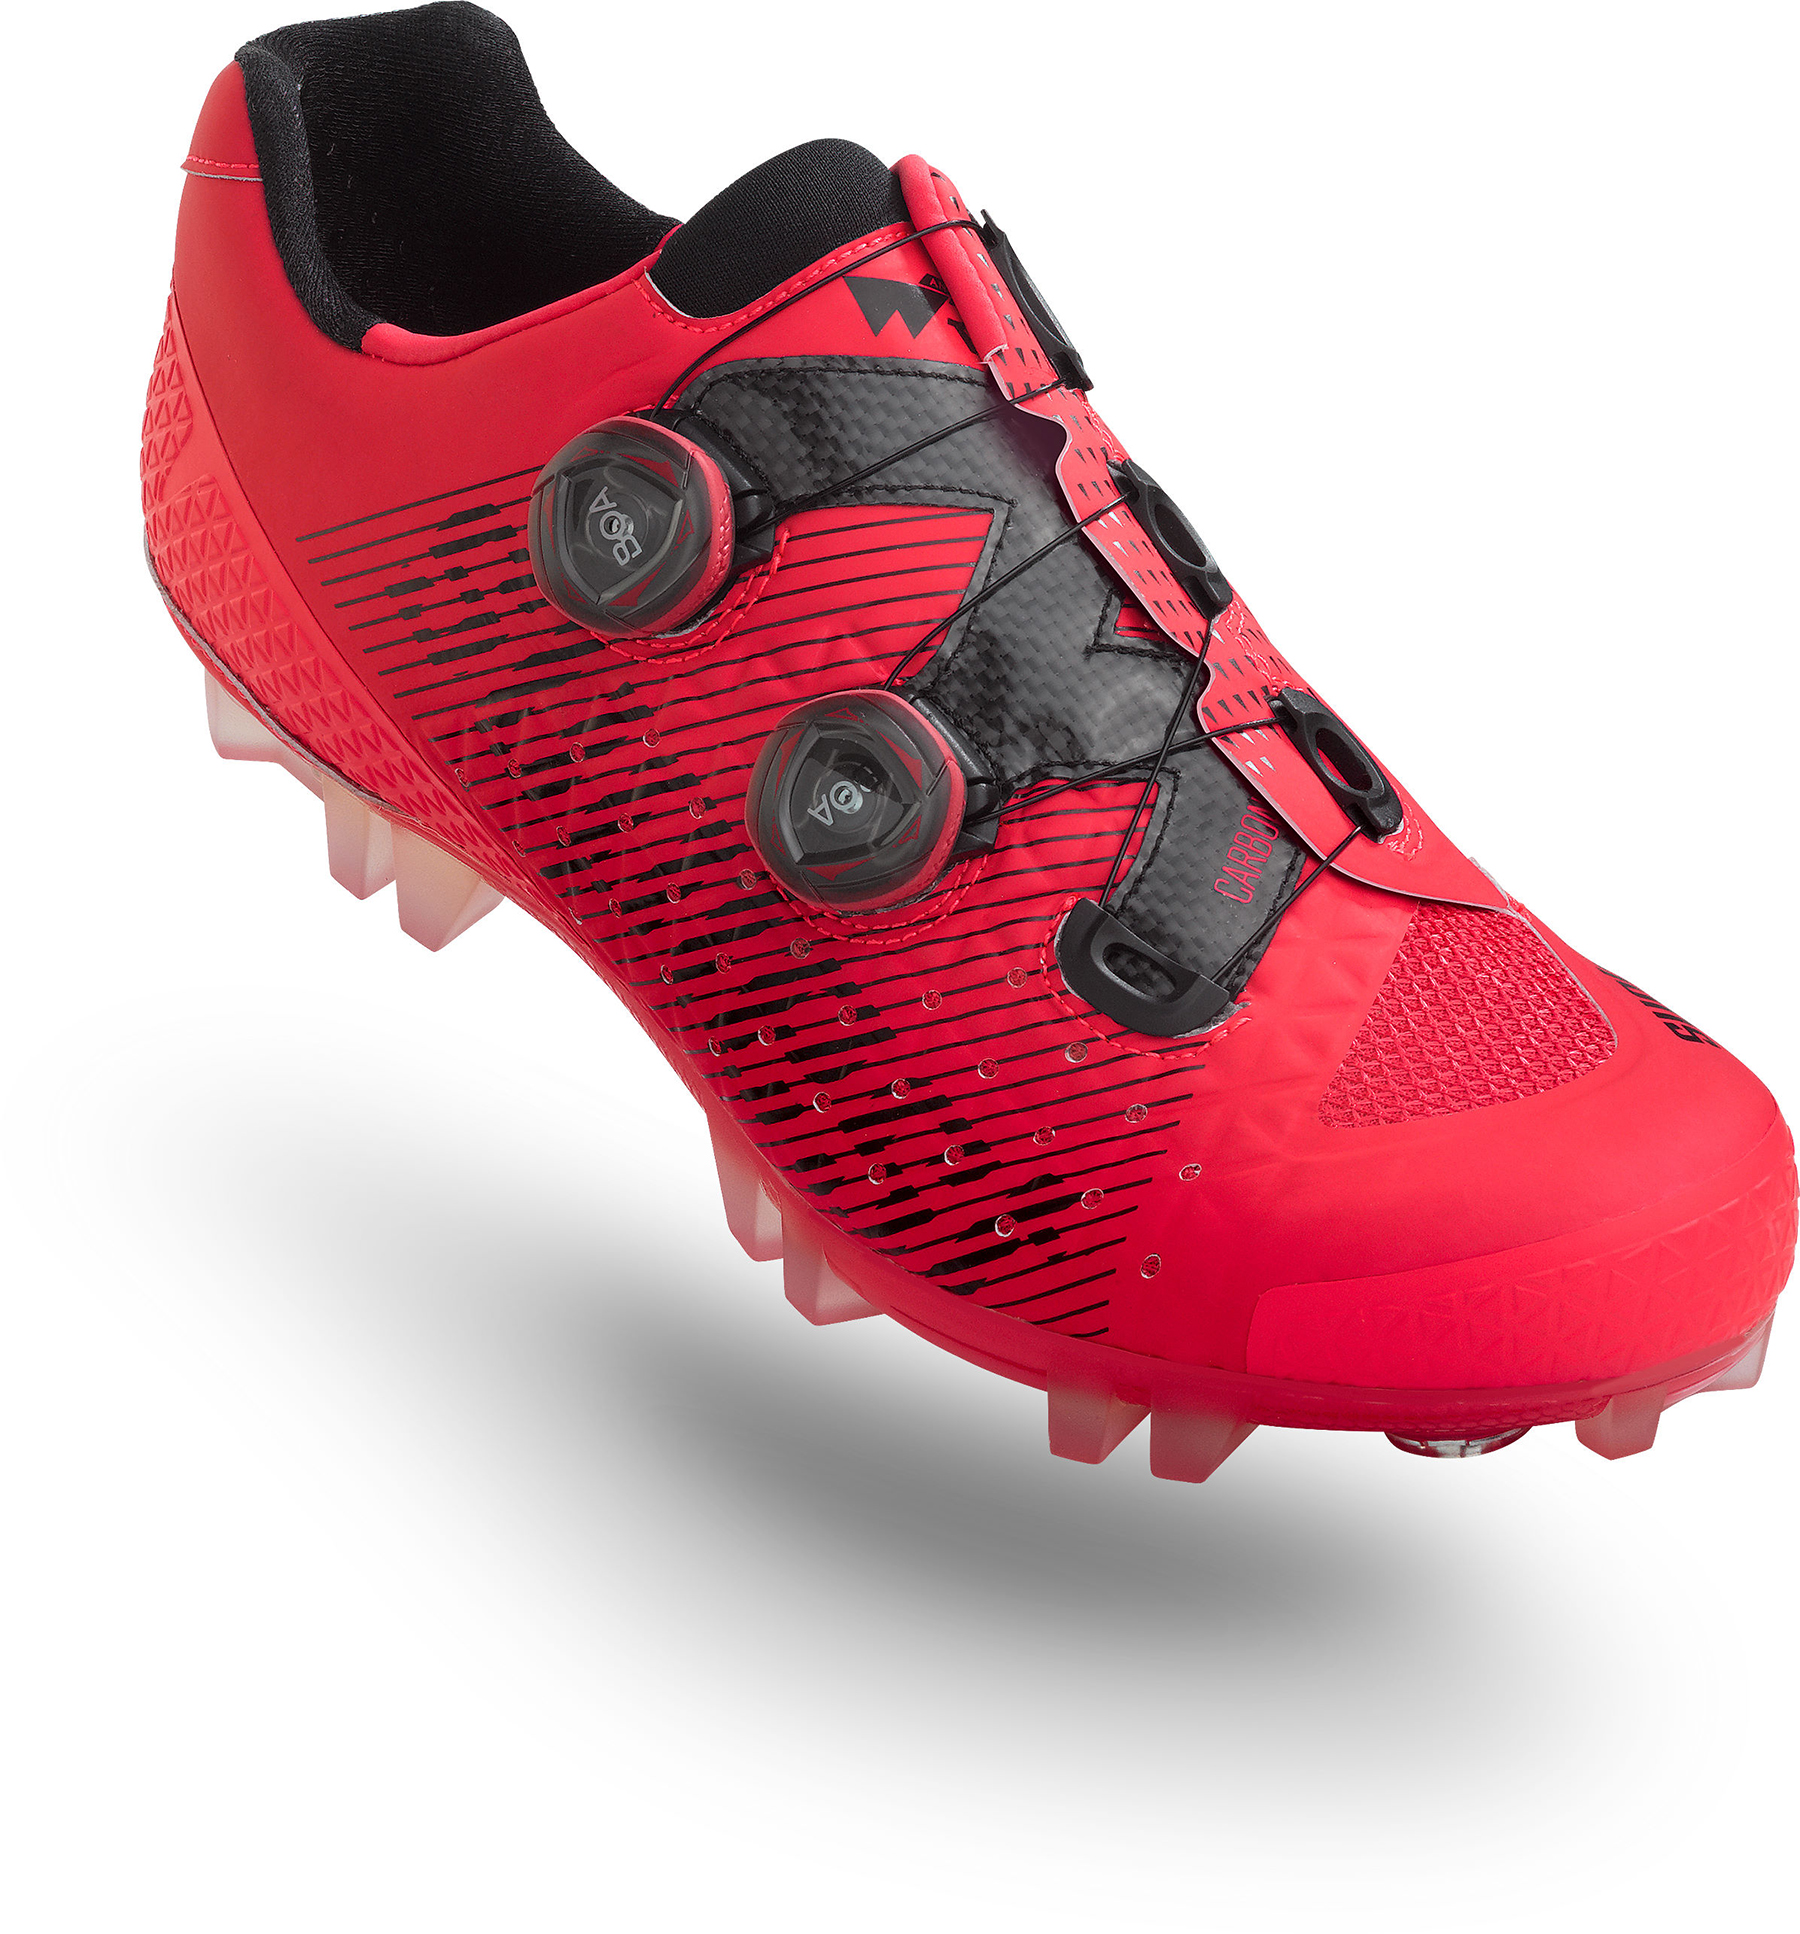 Suplest Edge3 Double BOA IP1 Off Road Shoe | Shoes and overlays